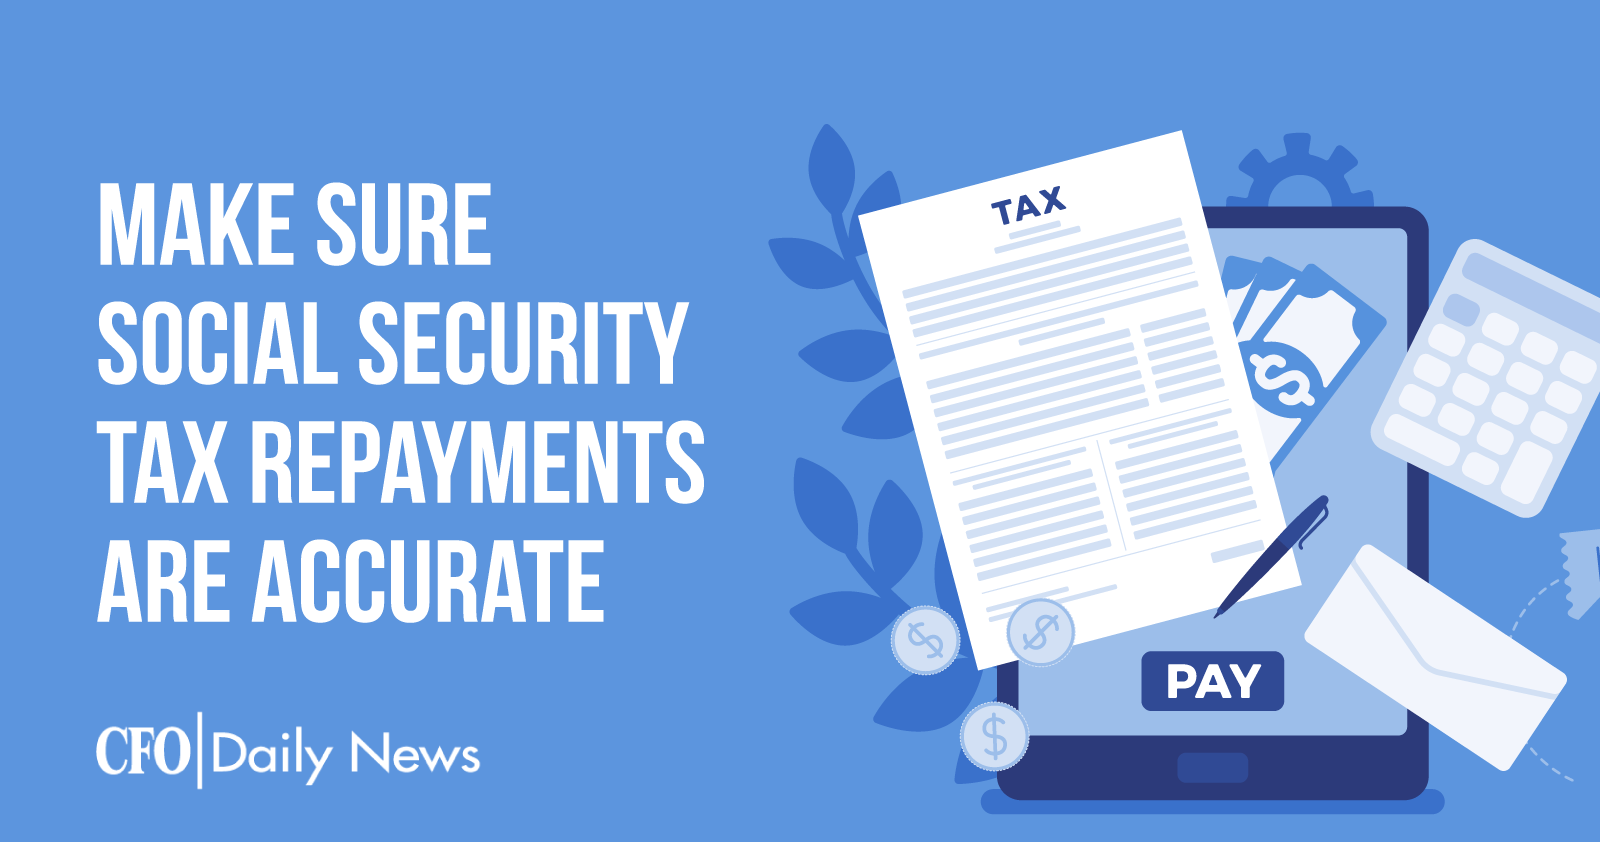 Make Sure Social Security Tax Repayments Are Accurate